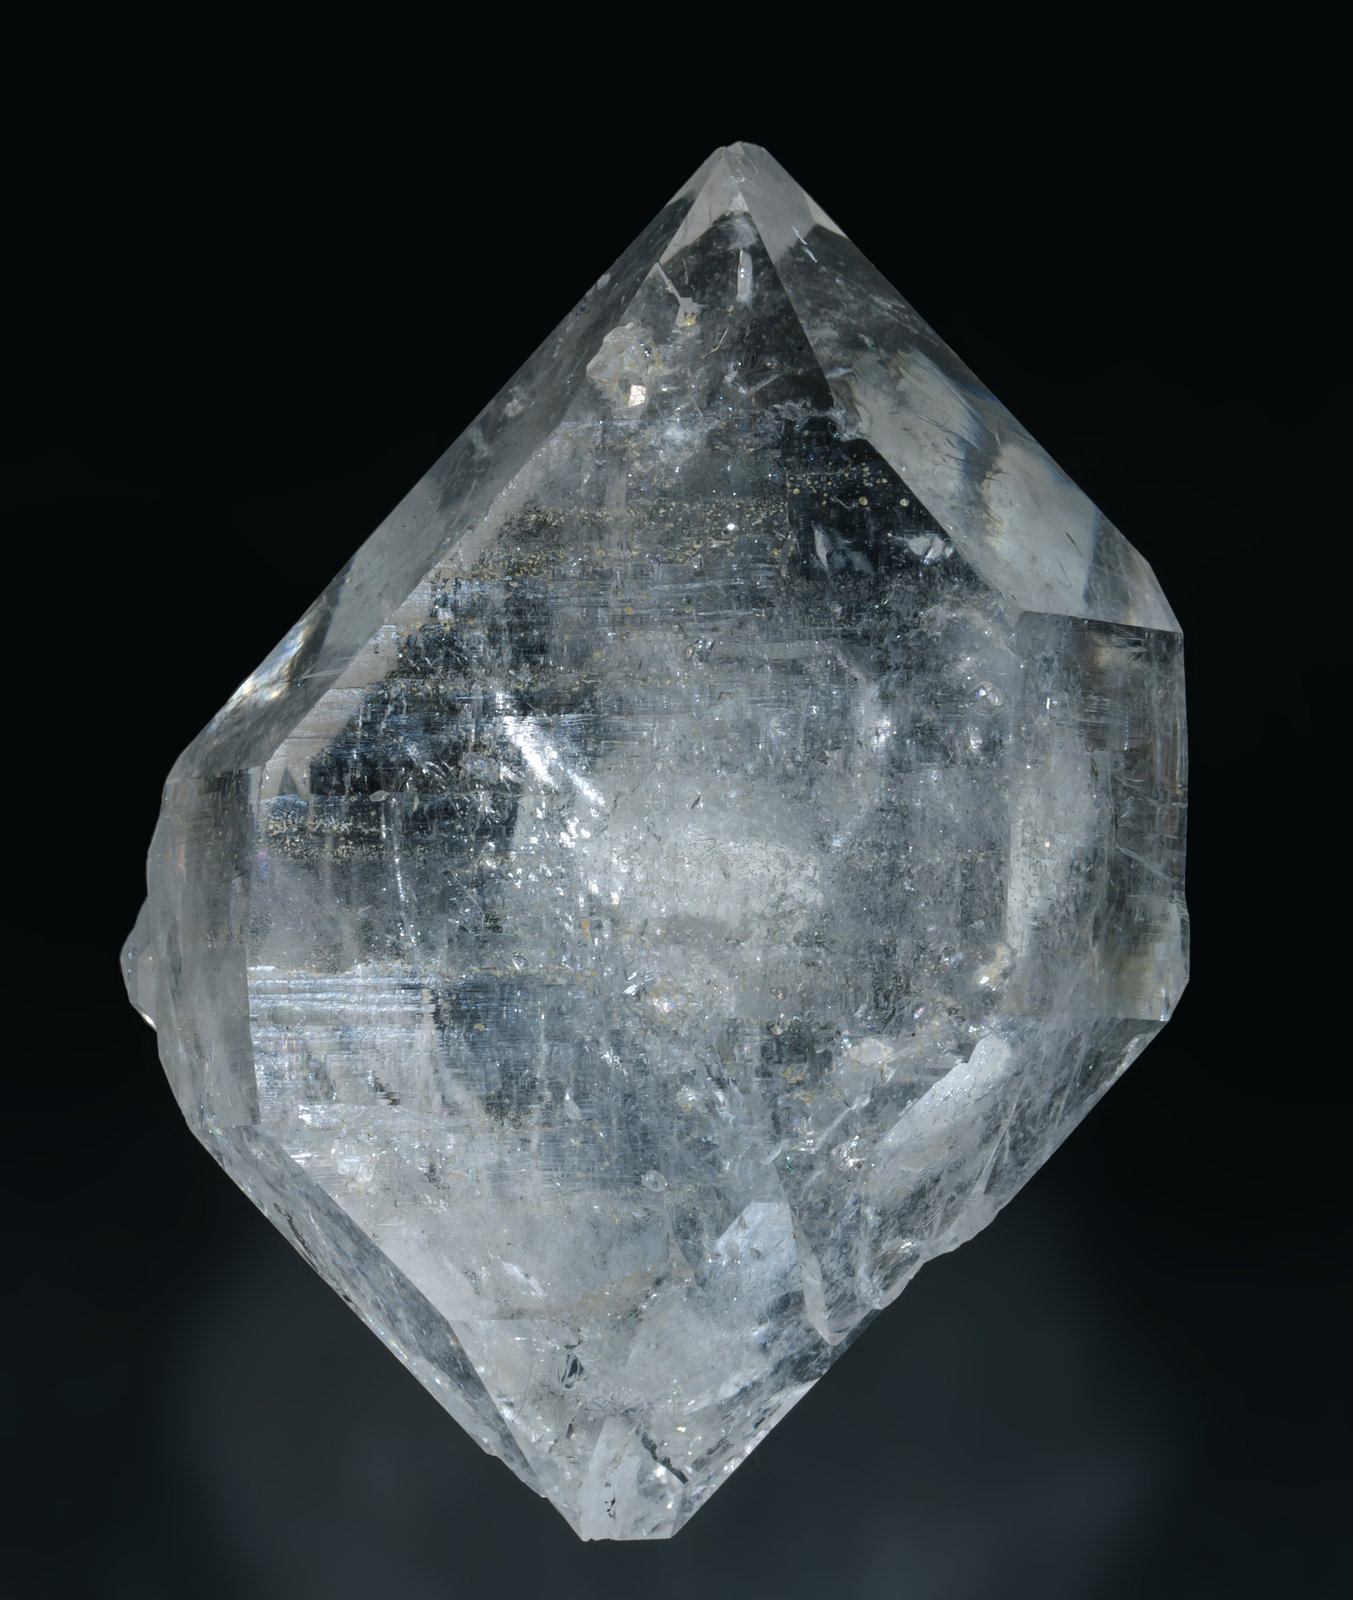 specimens/s_imagesAG5/Quartz-DF6AG5f.jpg